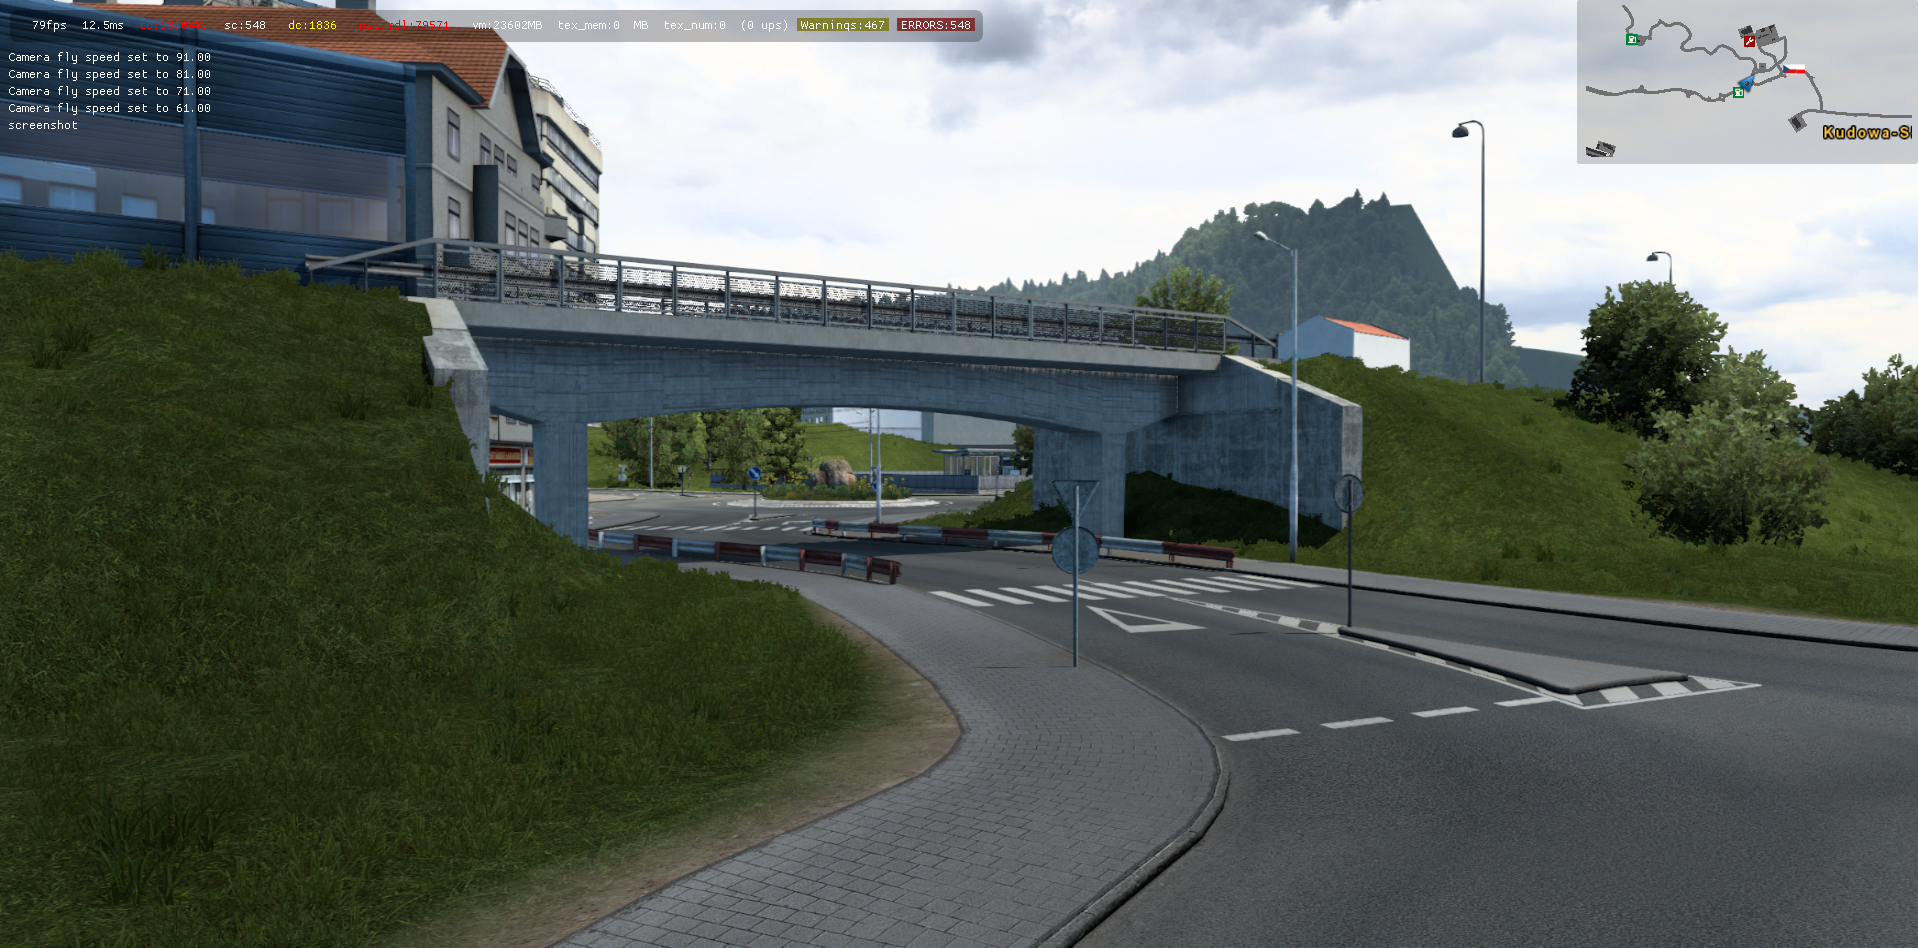 ets2_20210928_184343_00.png